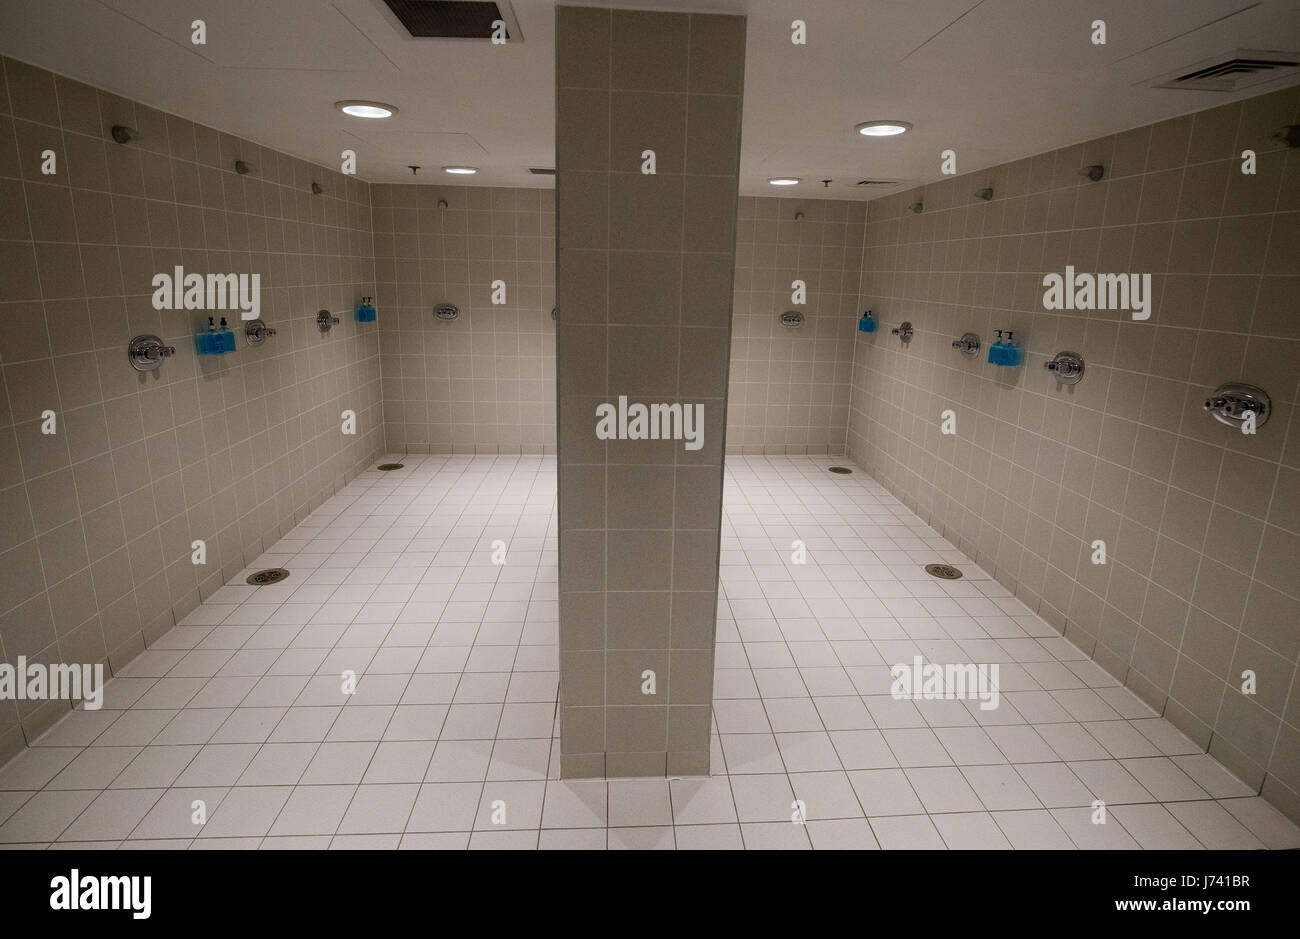 A general view of the showers inside the changing rooms at Wembley ...